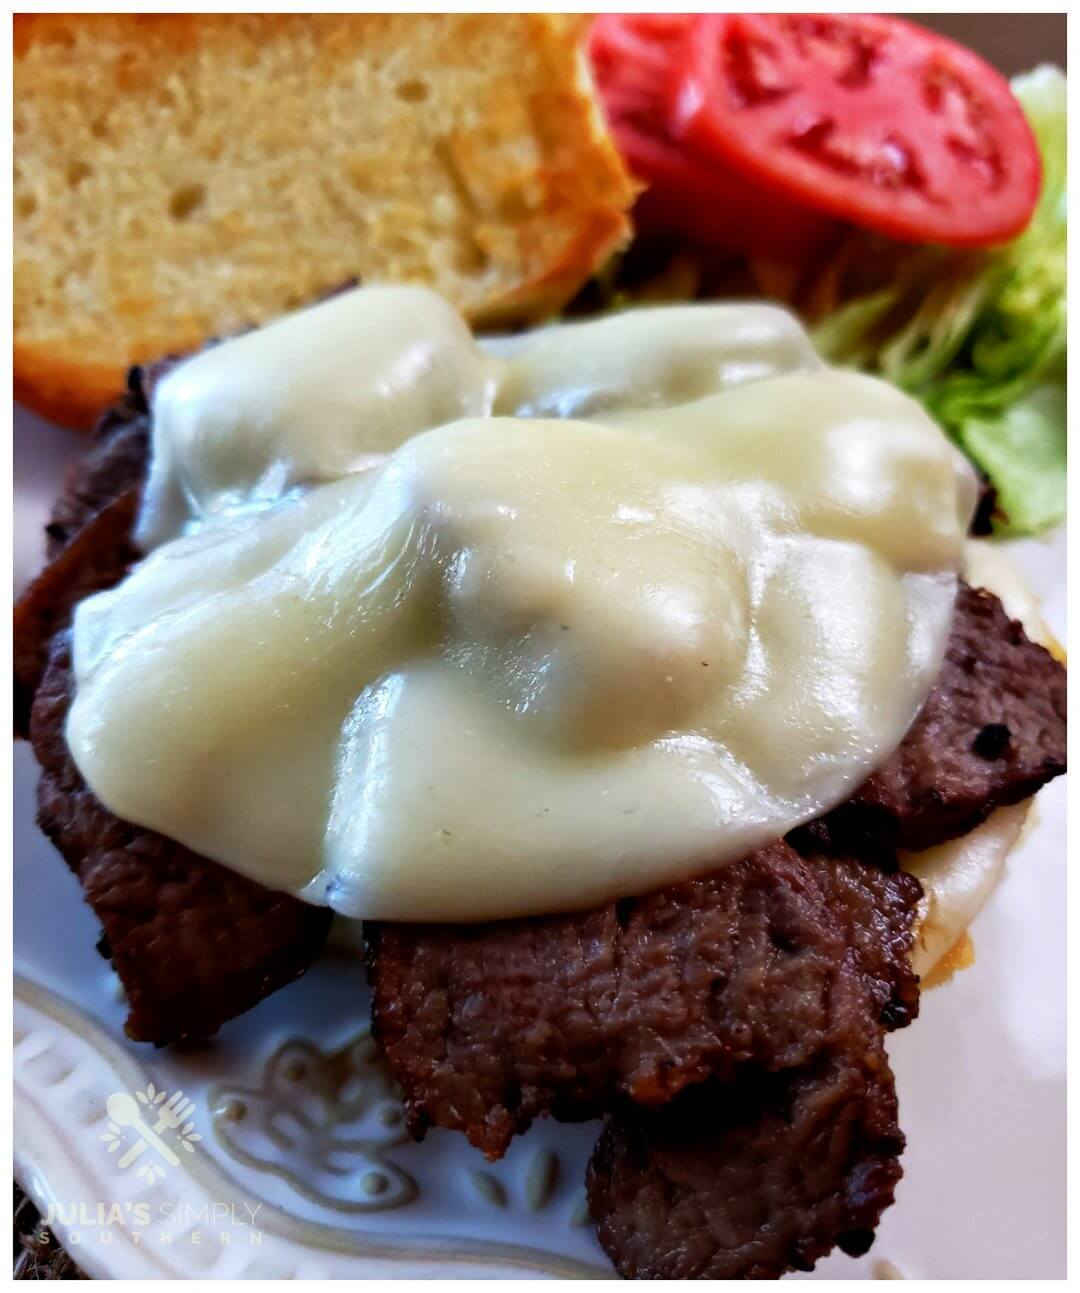 Awesome steak lover sandwich with leftover beef tenderloin and Provolone cheese.